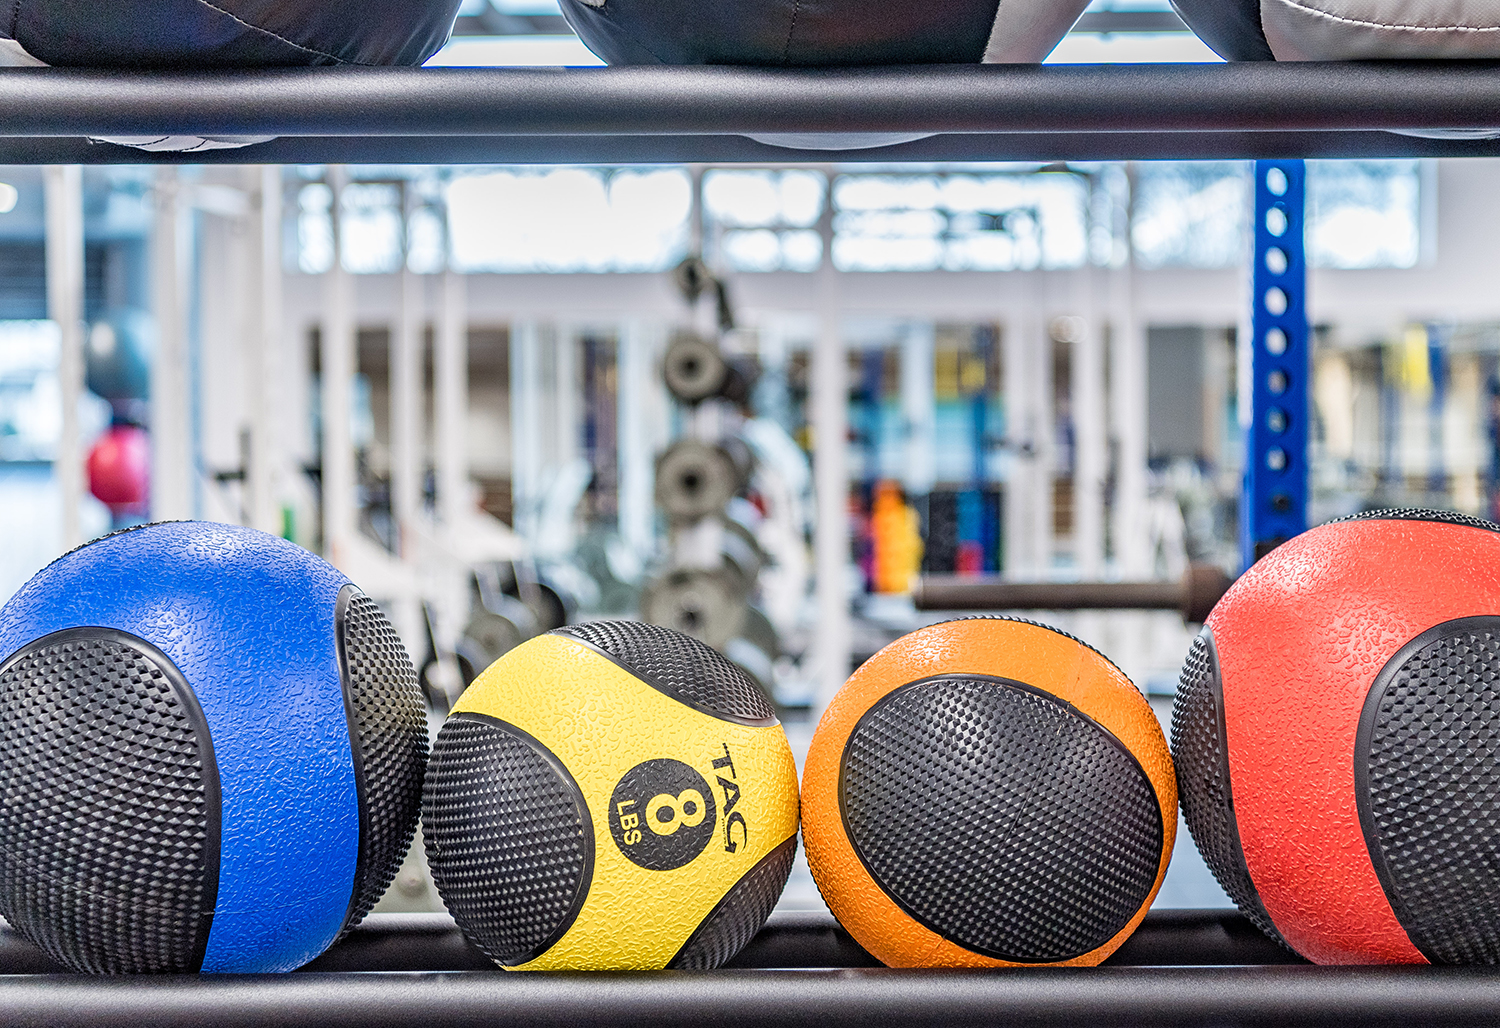 Colorful equipment in the weight training area